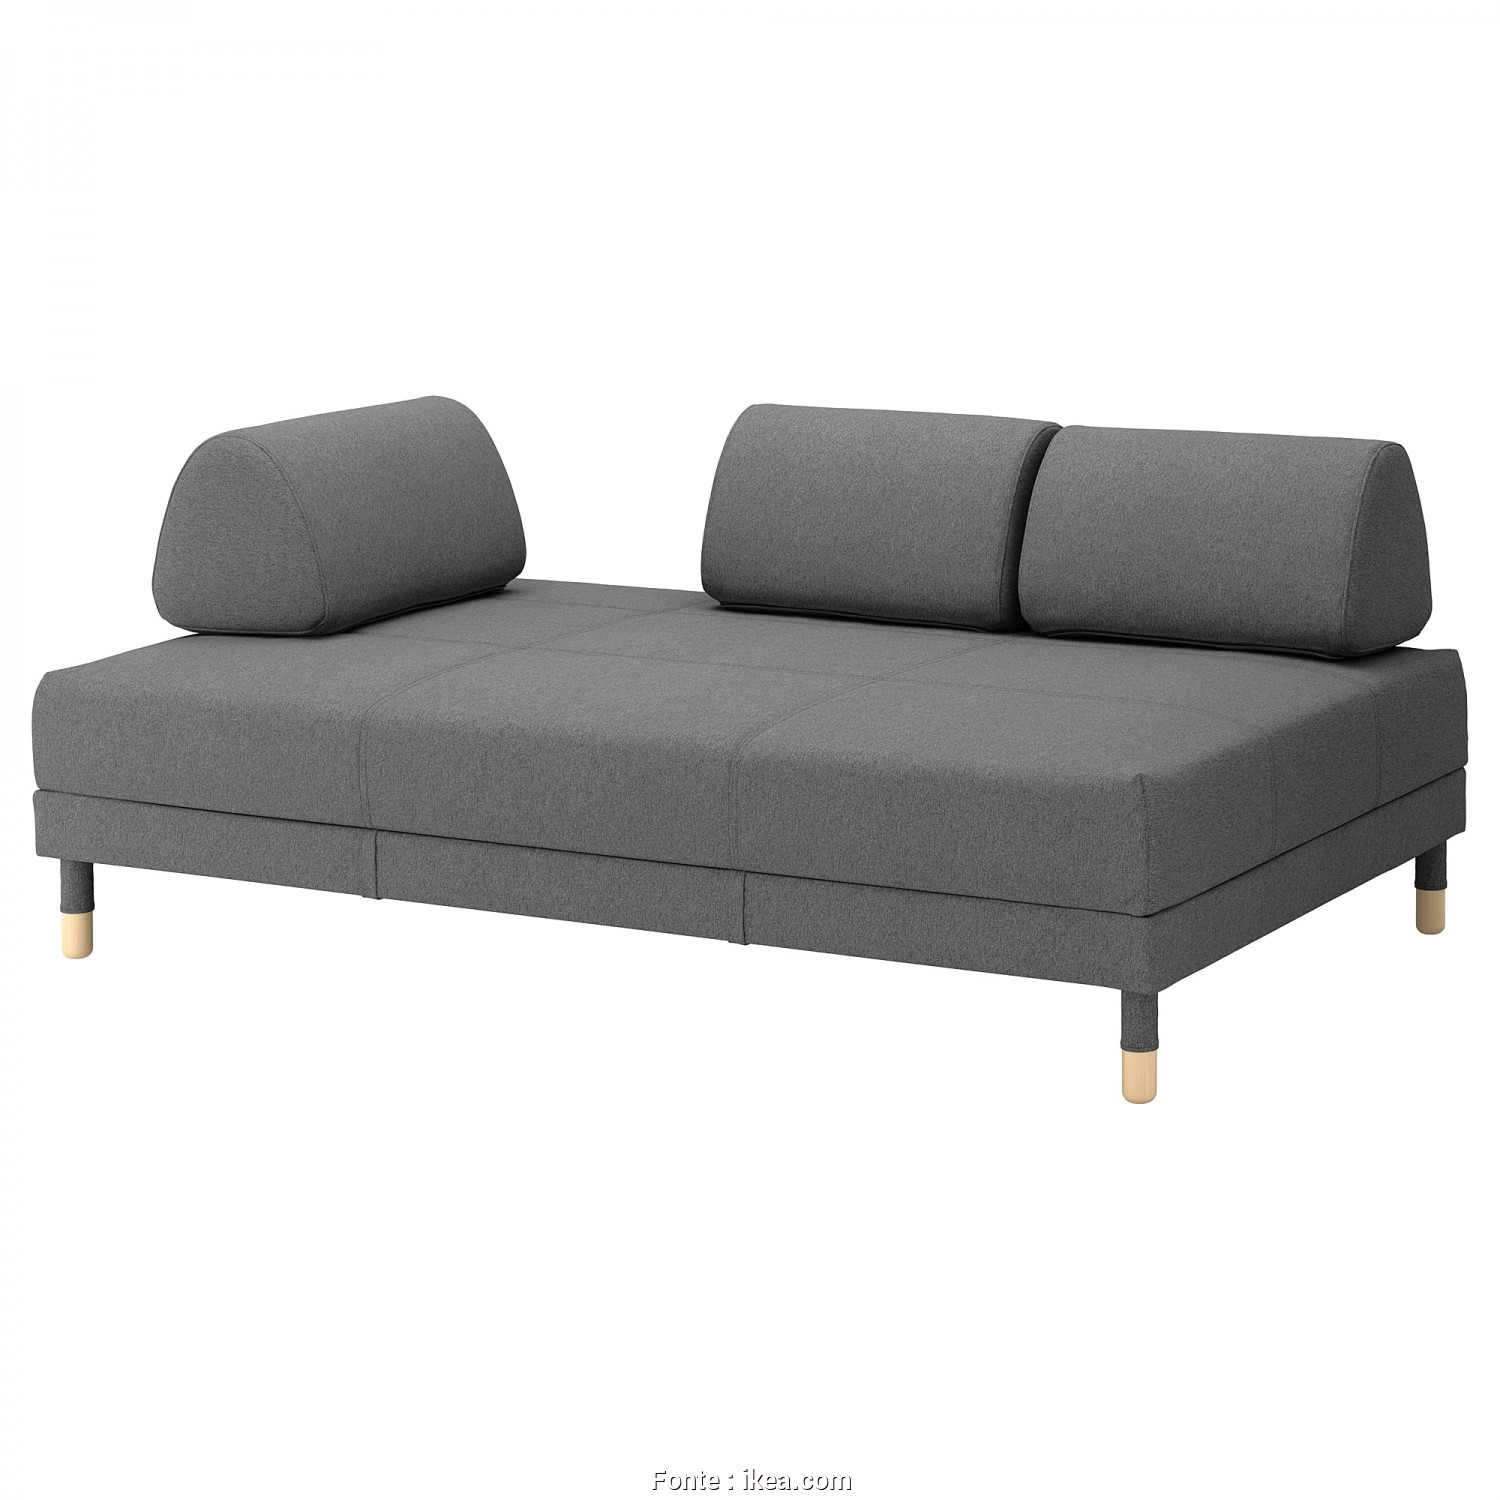 Ikea Beddinge Grey Cover, Grande IKEA FLOTTEBO Sofa-Bed, Cover Is Easy To Keep Clean Since It Is Removable